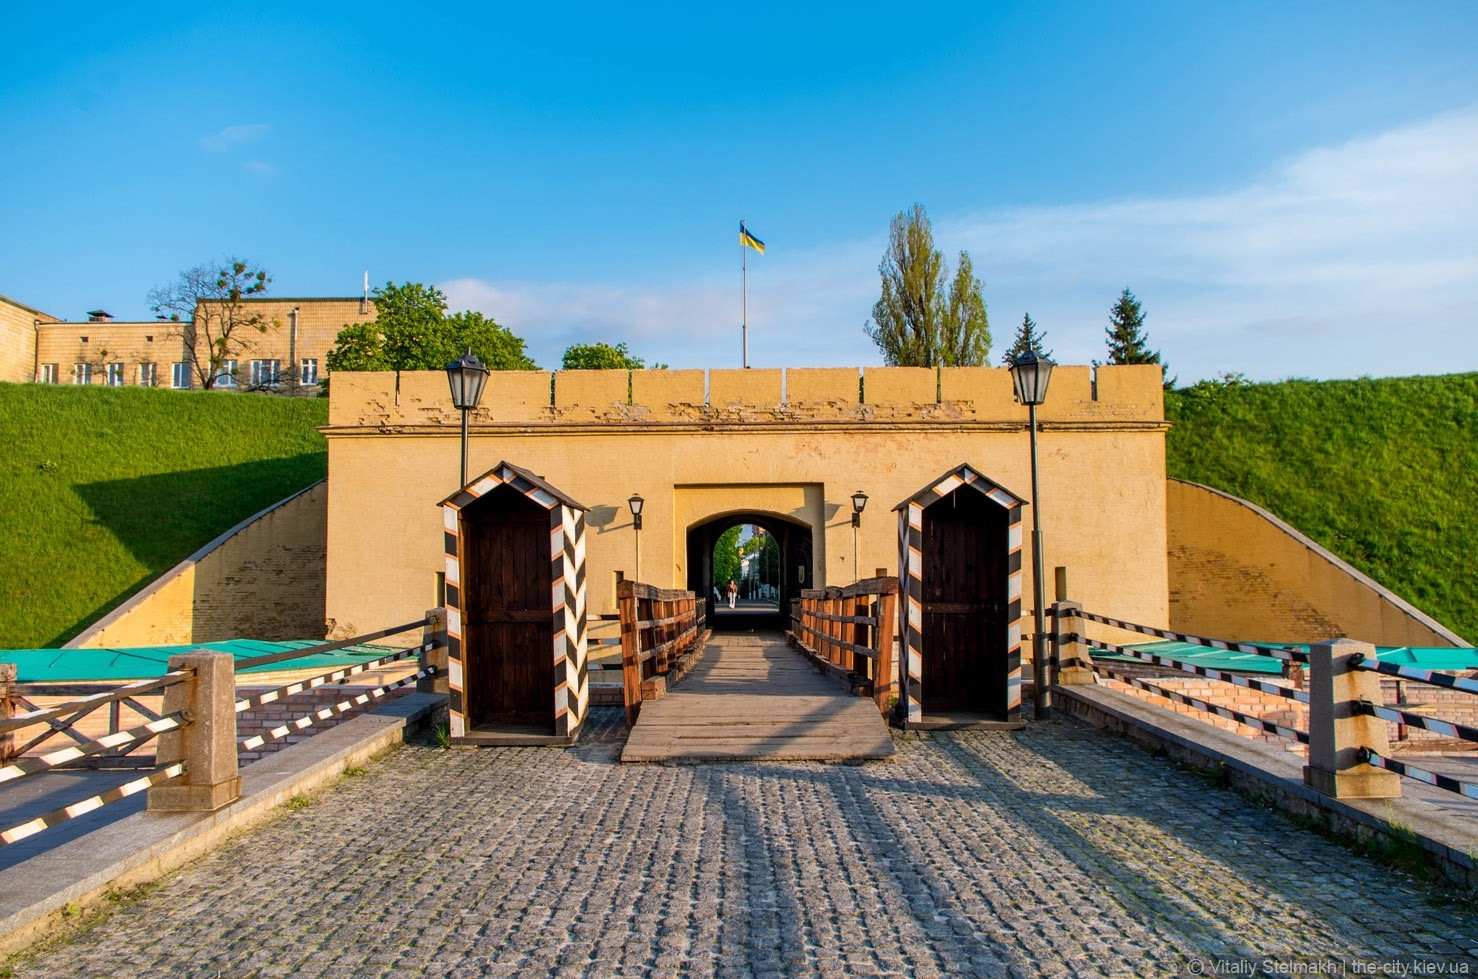 Kiev attractions. What to visit in the capital of Ukraine